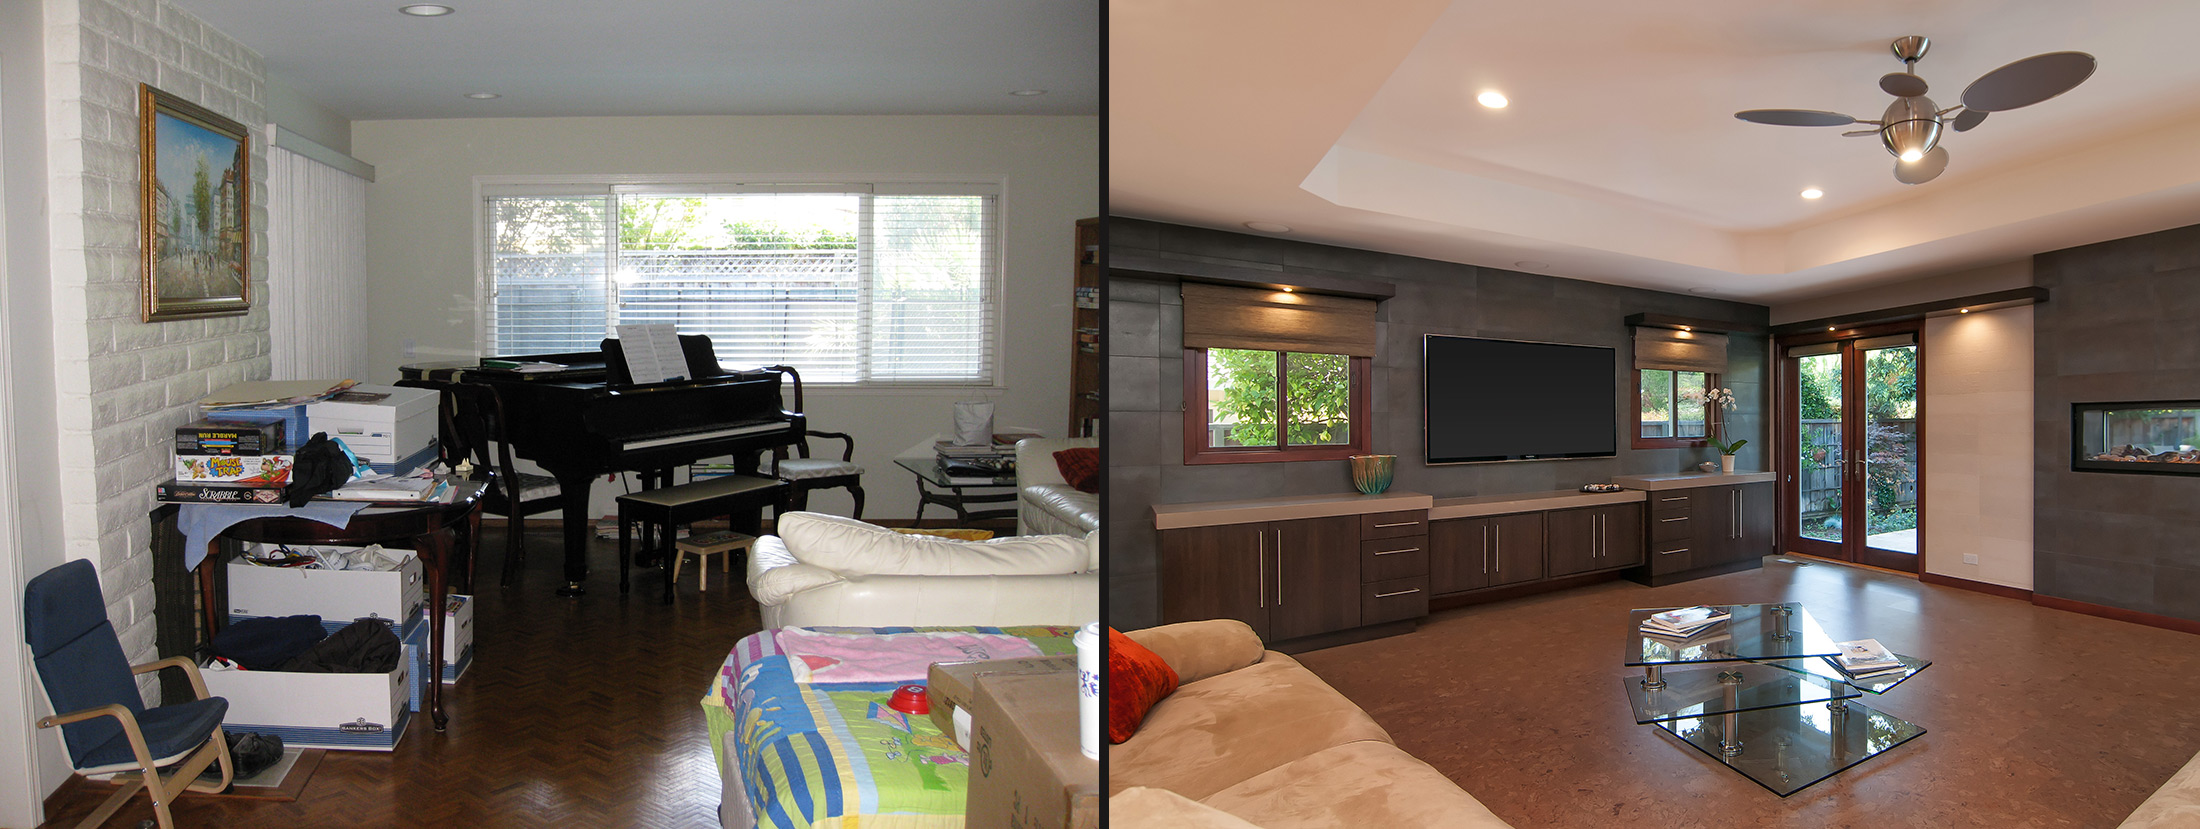 Before After Remodeling Galleries Saratoga